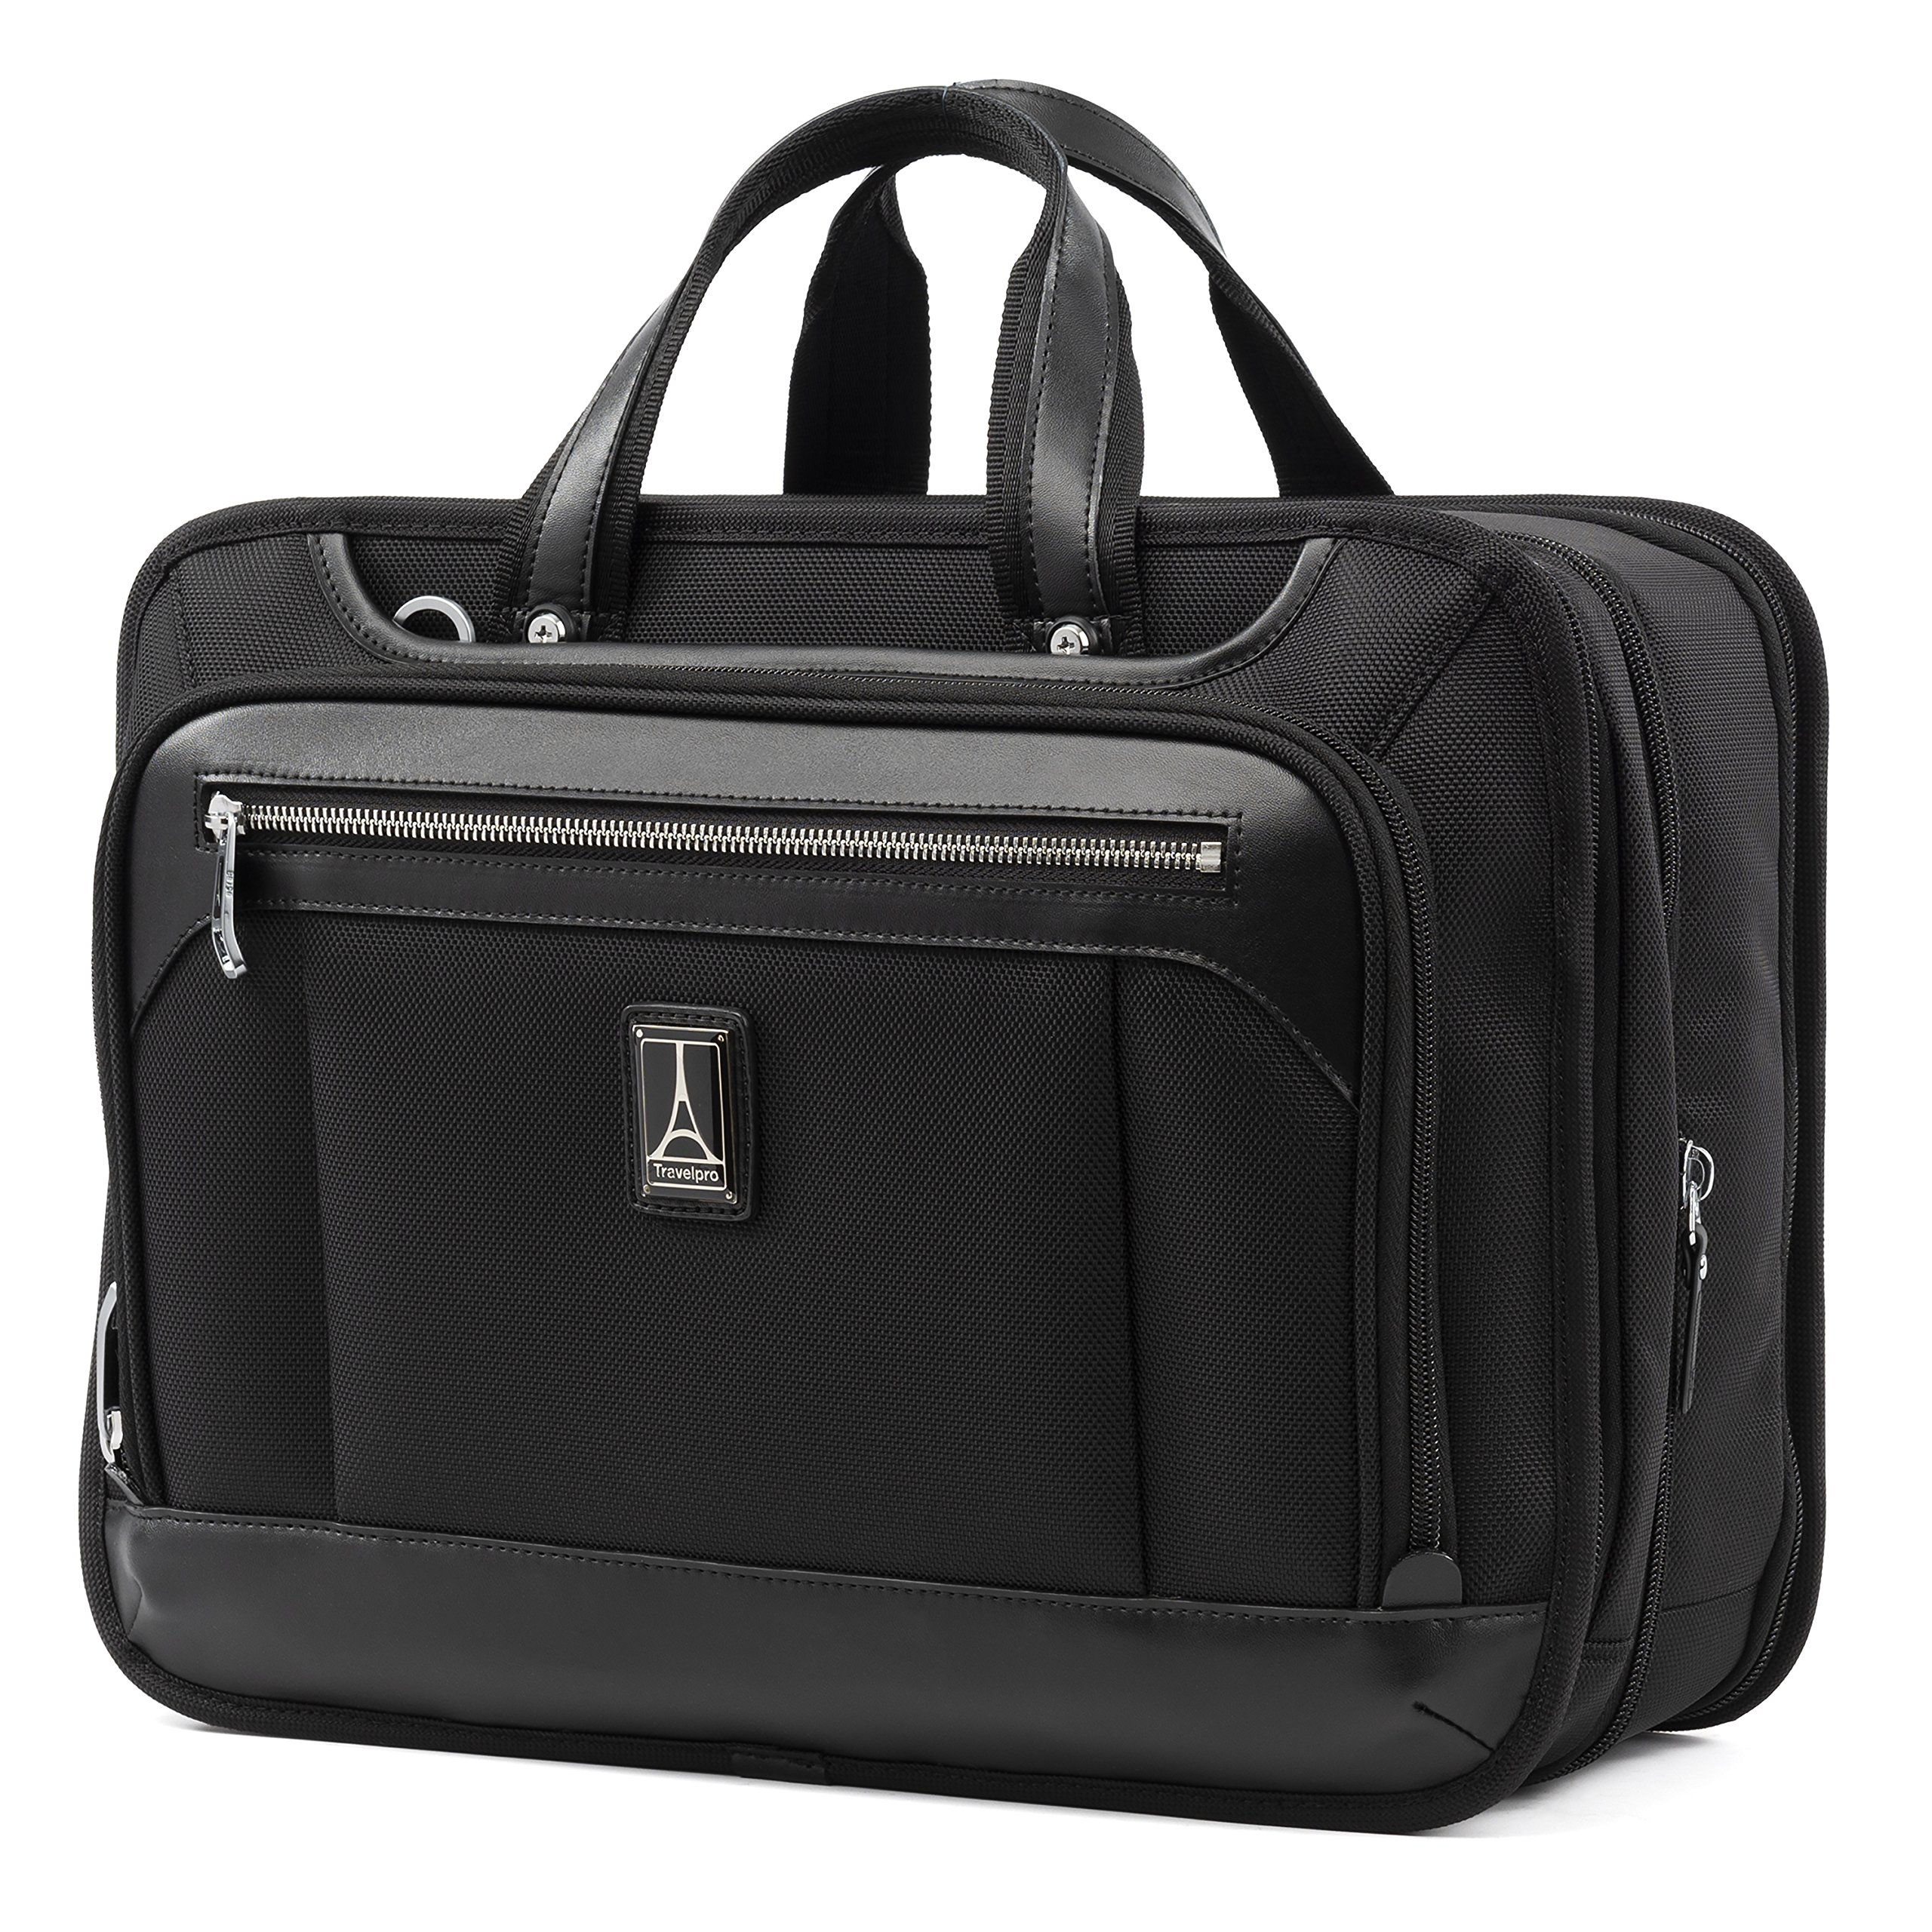 Travelpro Luggage Platinum Elite 16'' Expandable Business Briefcase, Shadow Black, One Size